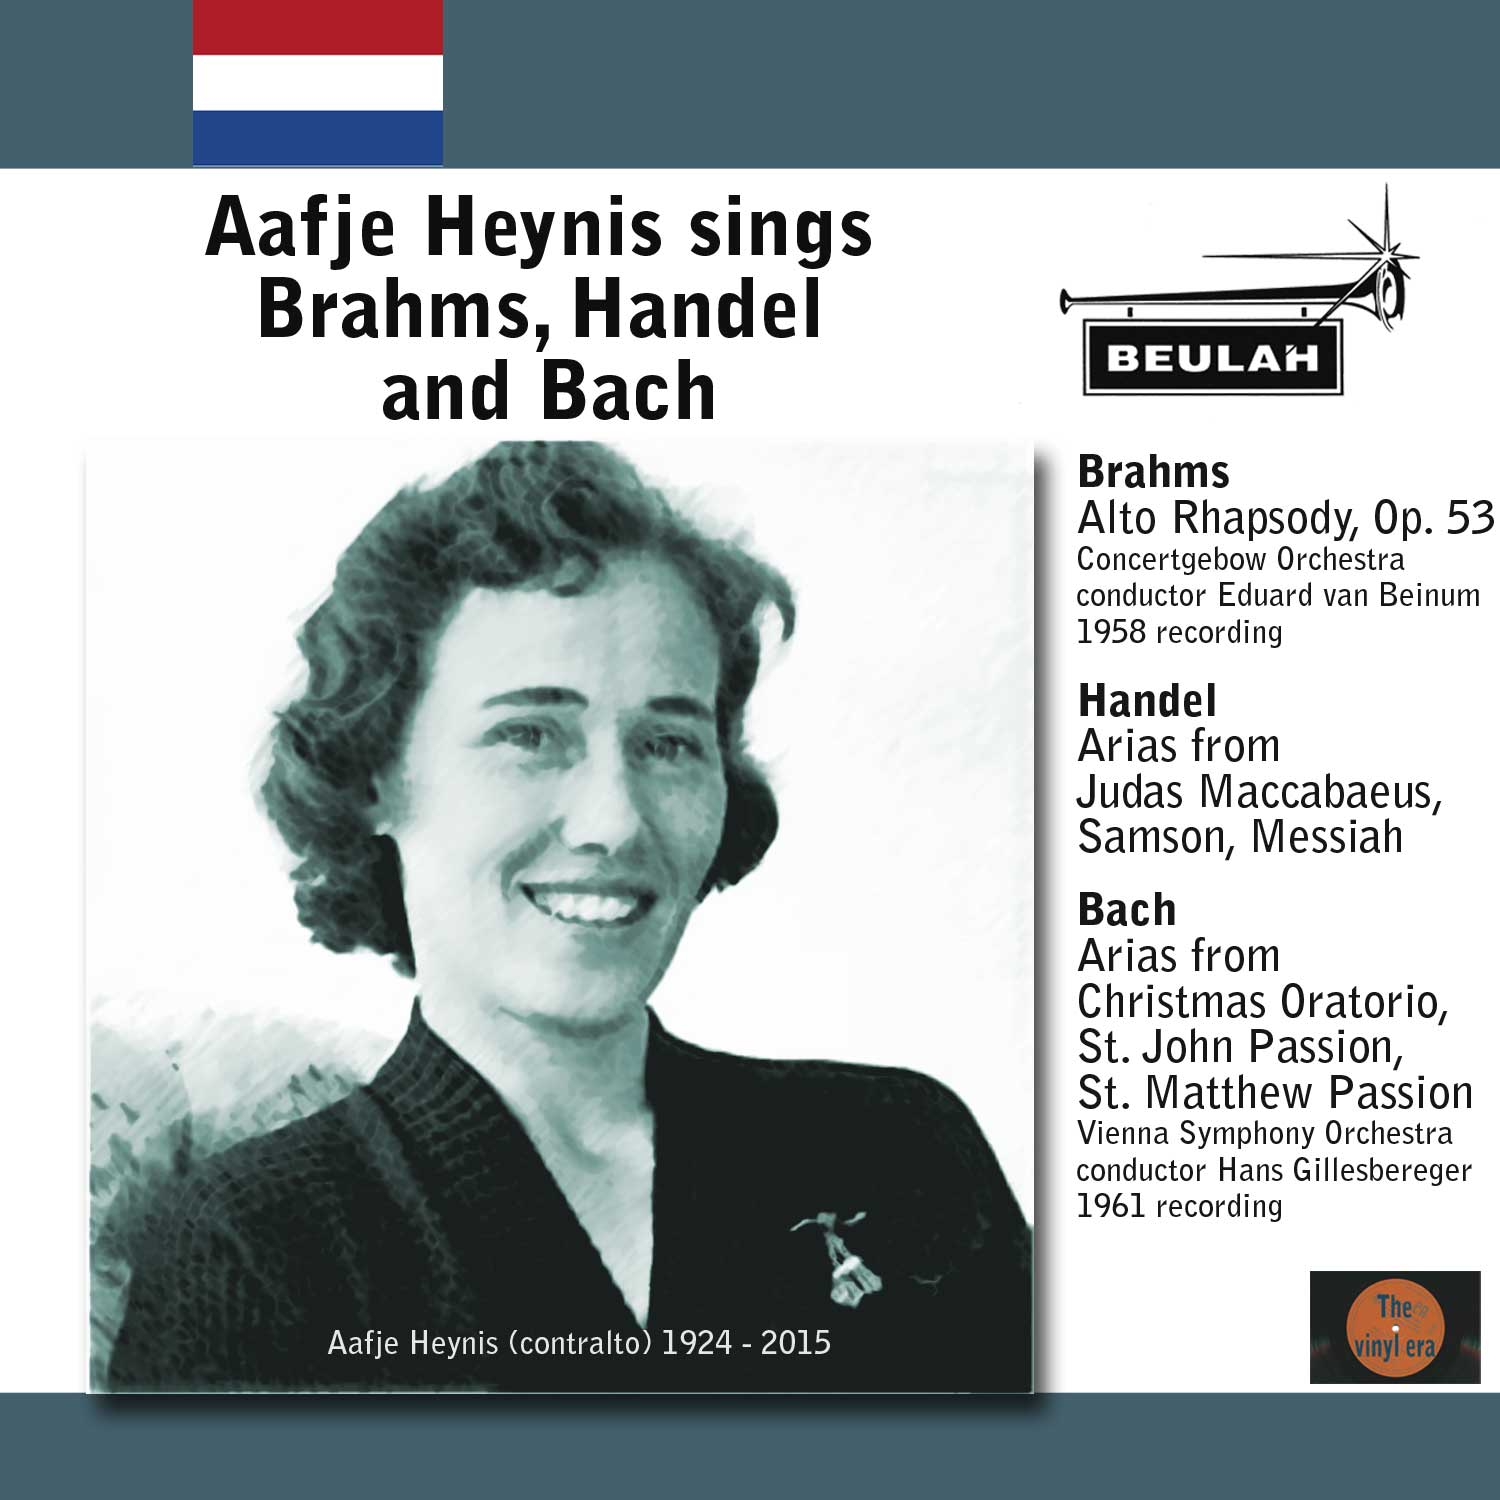 1ps8 Aafje Heynis sings Brahms, Handel and Bach